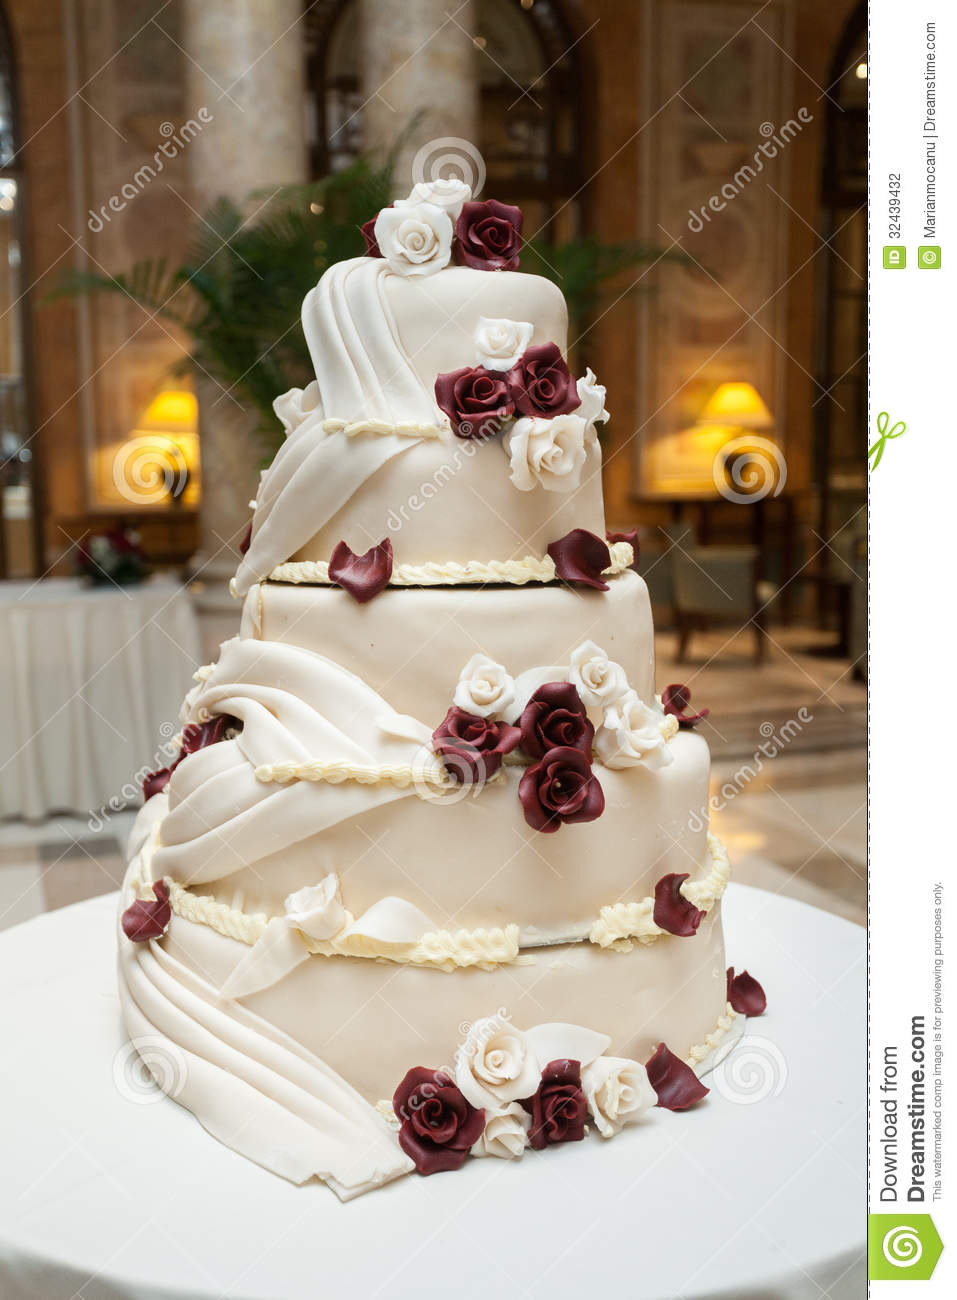 Tasty Wedding Cake Stock Photo Image Of Taste White